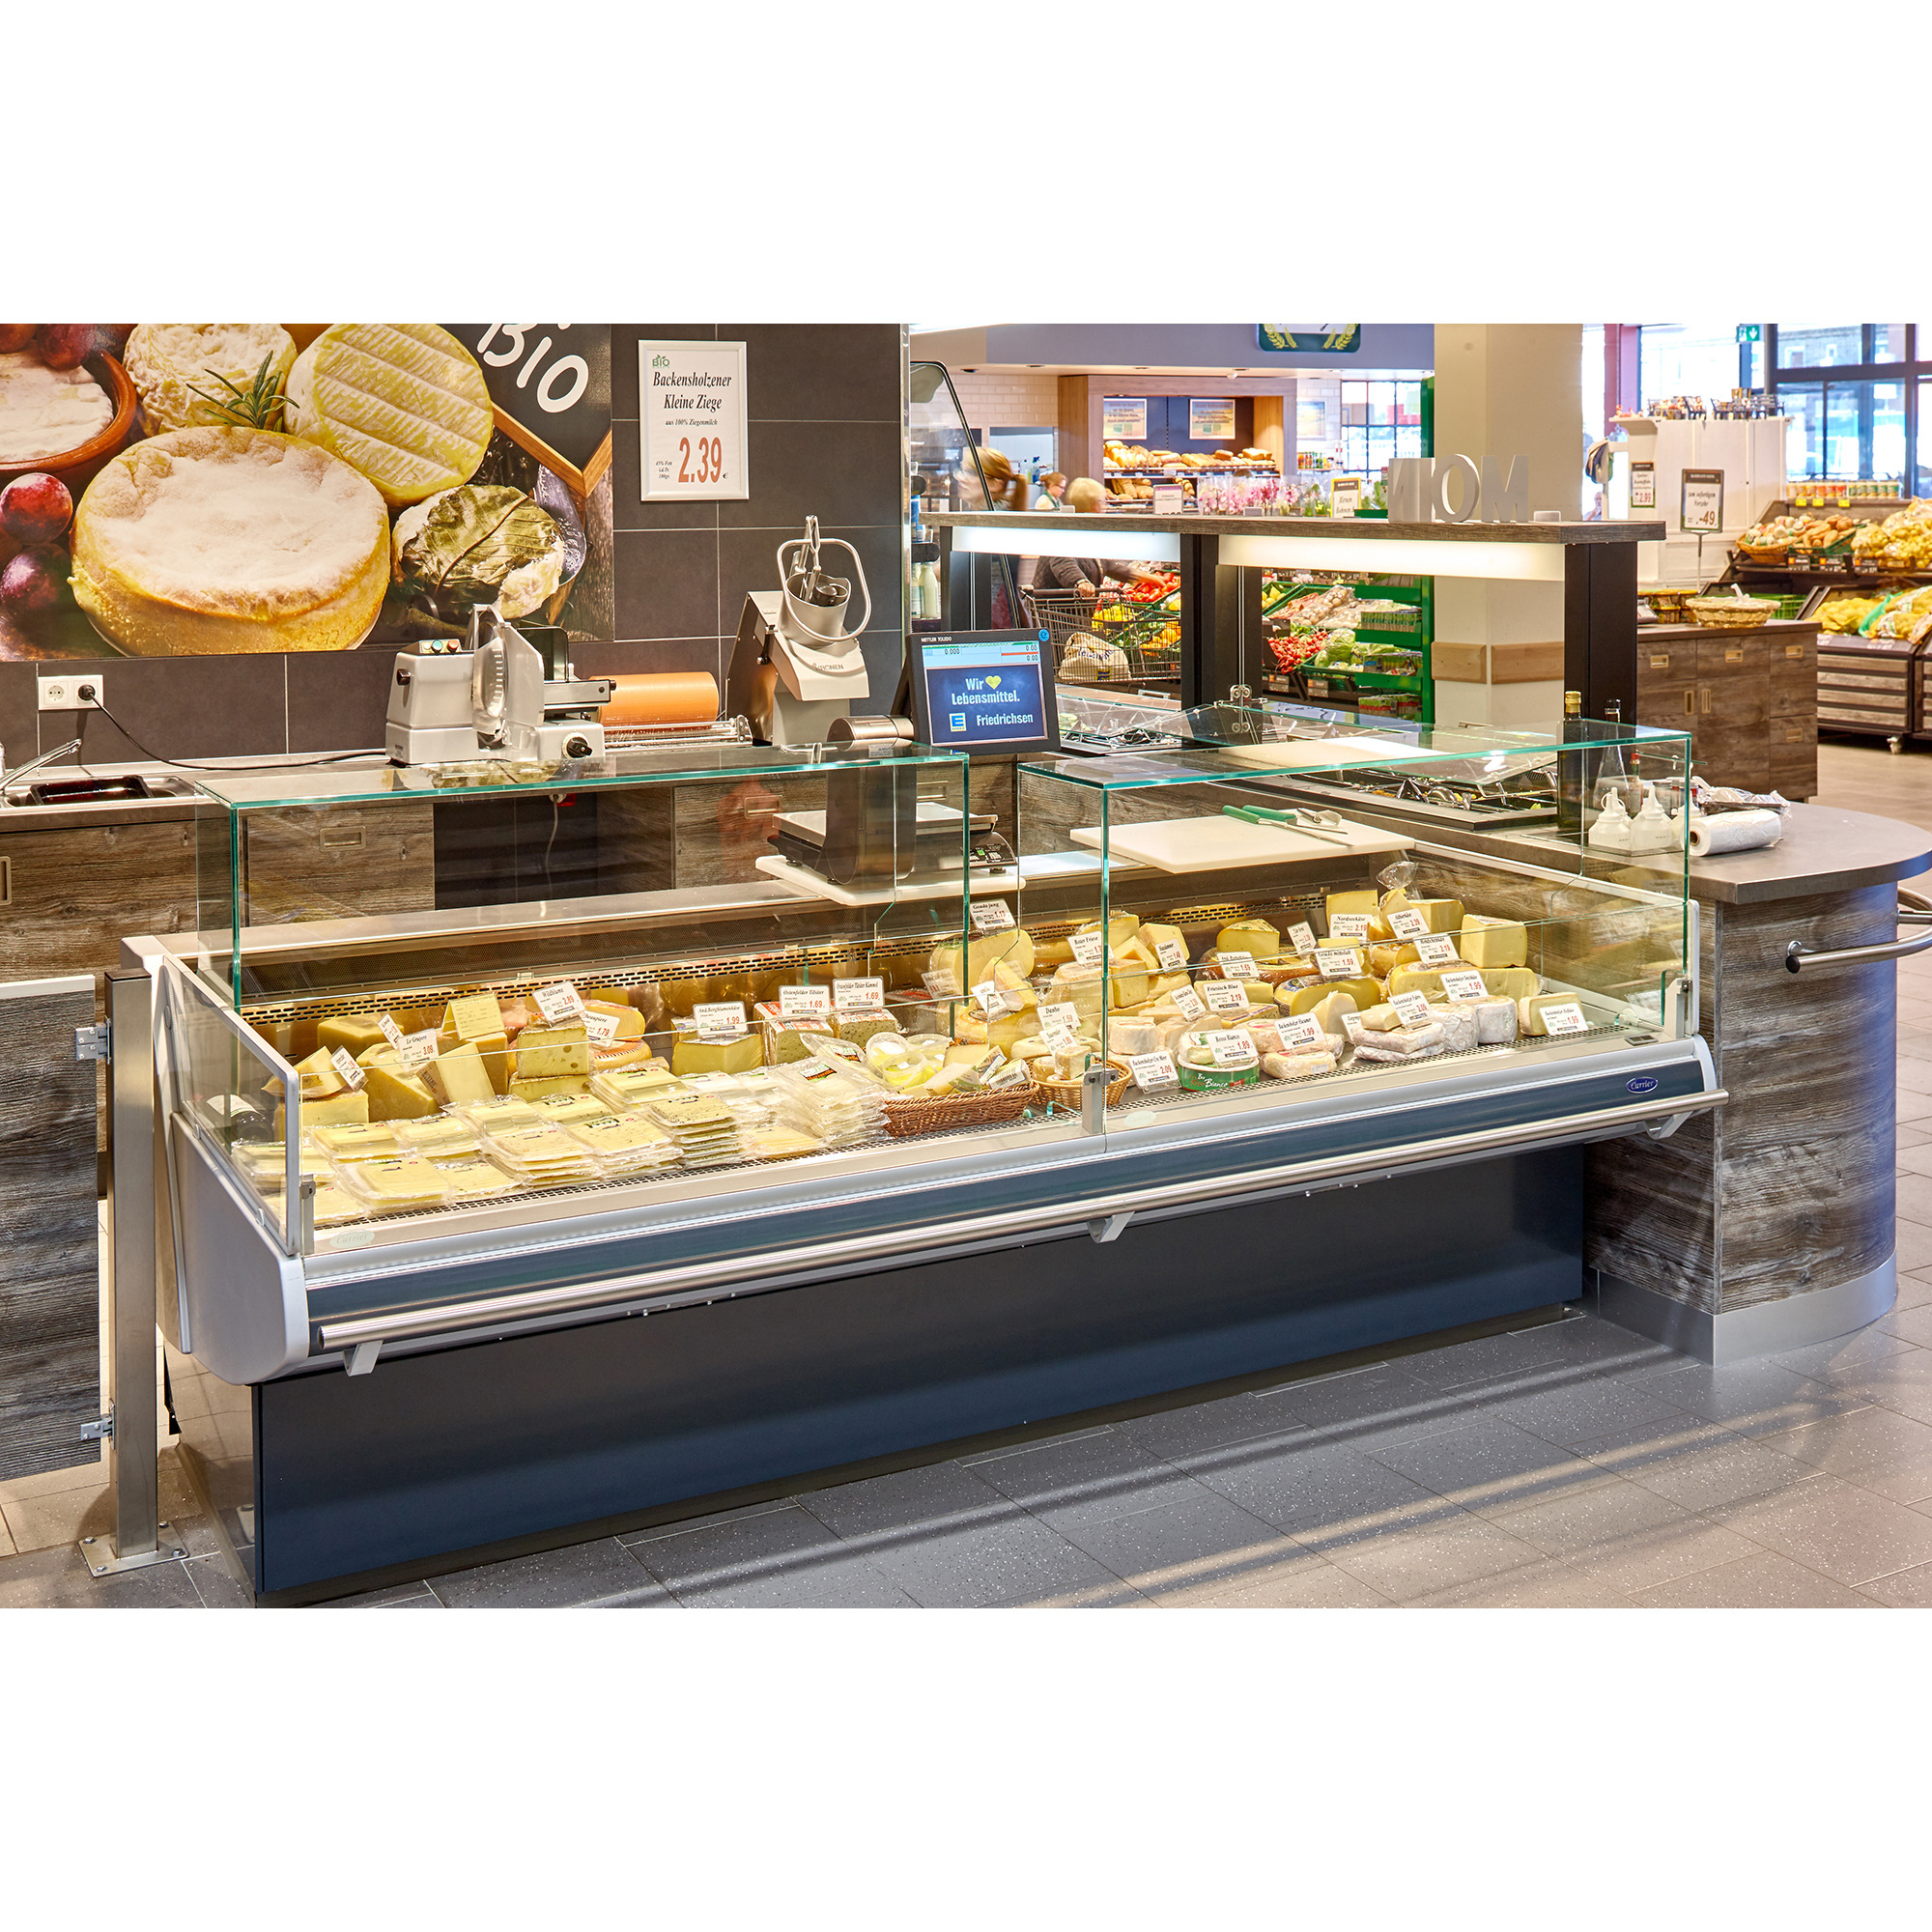 refrigerated-counter-danaos-cc-A